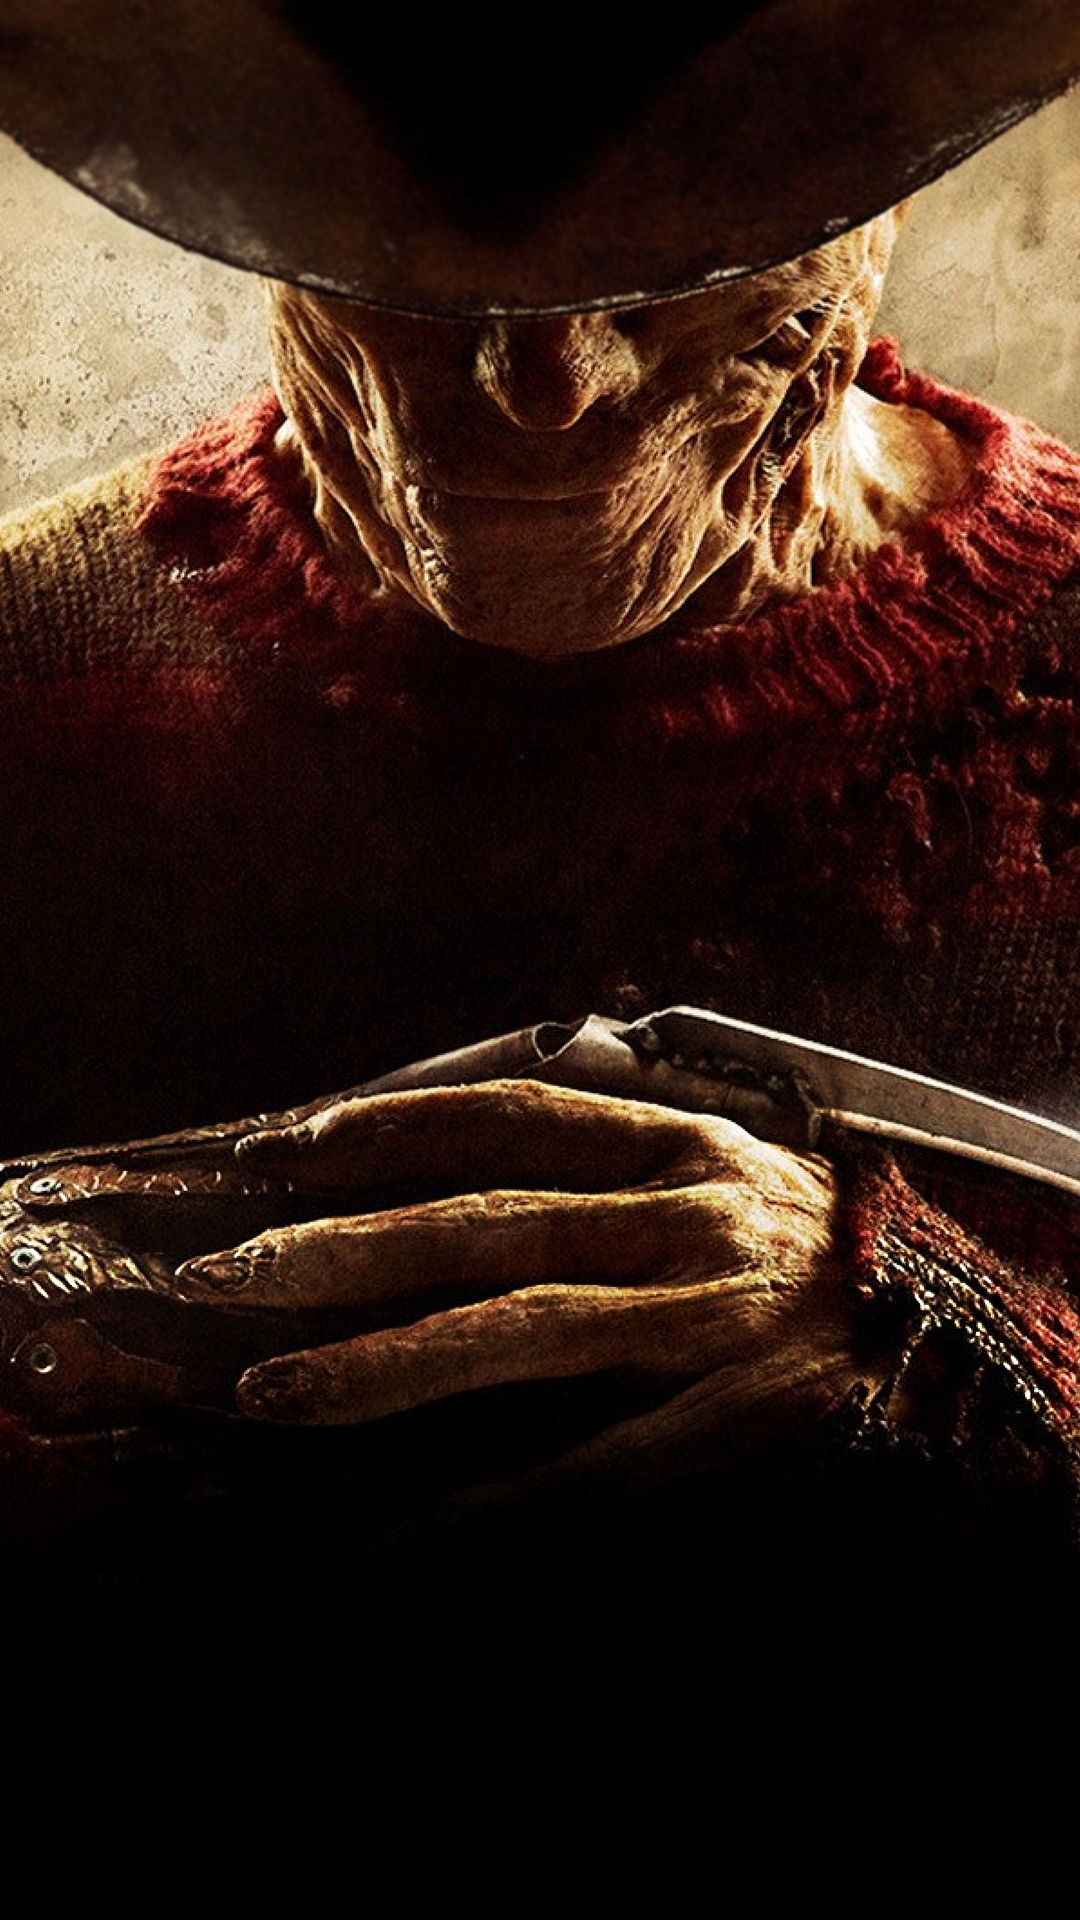 Title Freddy Krueger Hd Wallpaper For Your Iphone 6 Dimension 1080 X 1920 File Type JPG JPEG